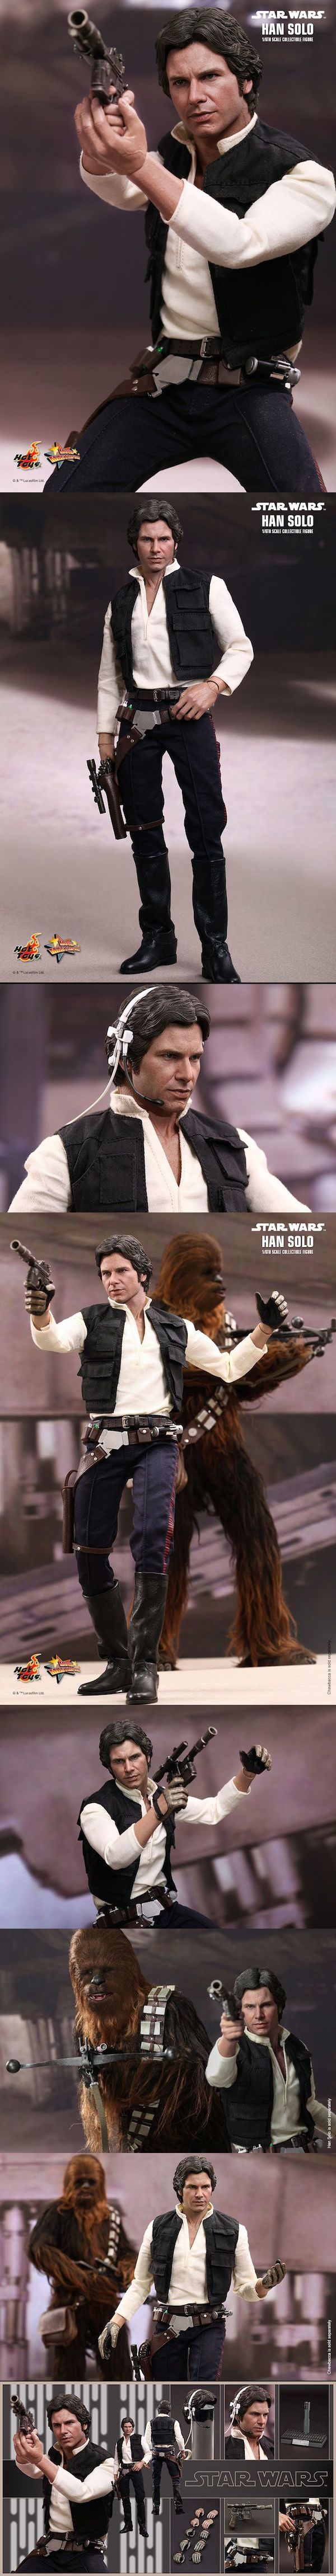 I dunno how much it looks like Harrison but it is nice! The New Hot Toys Star Wars Han Solo Figure is Simply Incredible Read more at http://nerdapproved.com/approved-products/the-new-hot-toys-star-wars-han-solo-and-chewbacca-figures-are-simply-incredible/#T0IVBoJGx8vkc7Ws.99